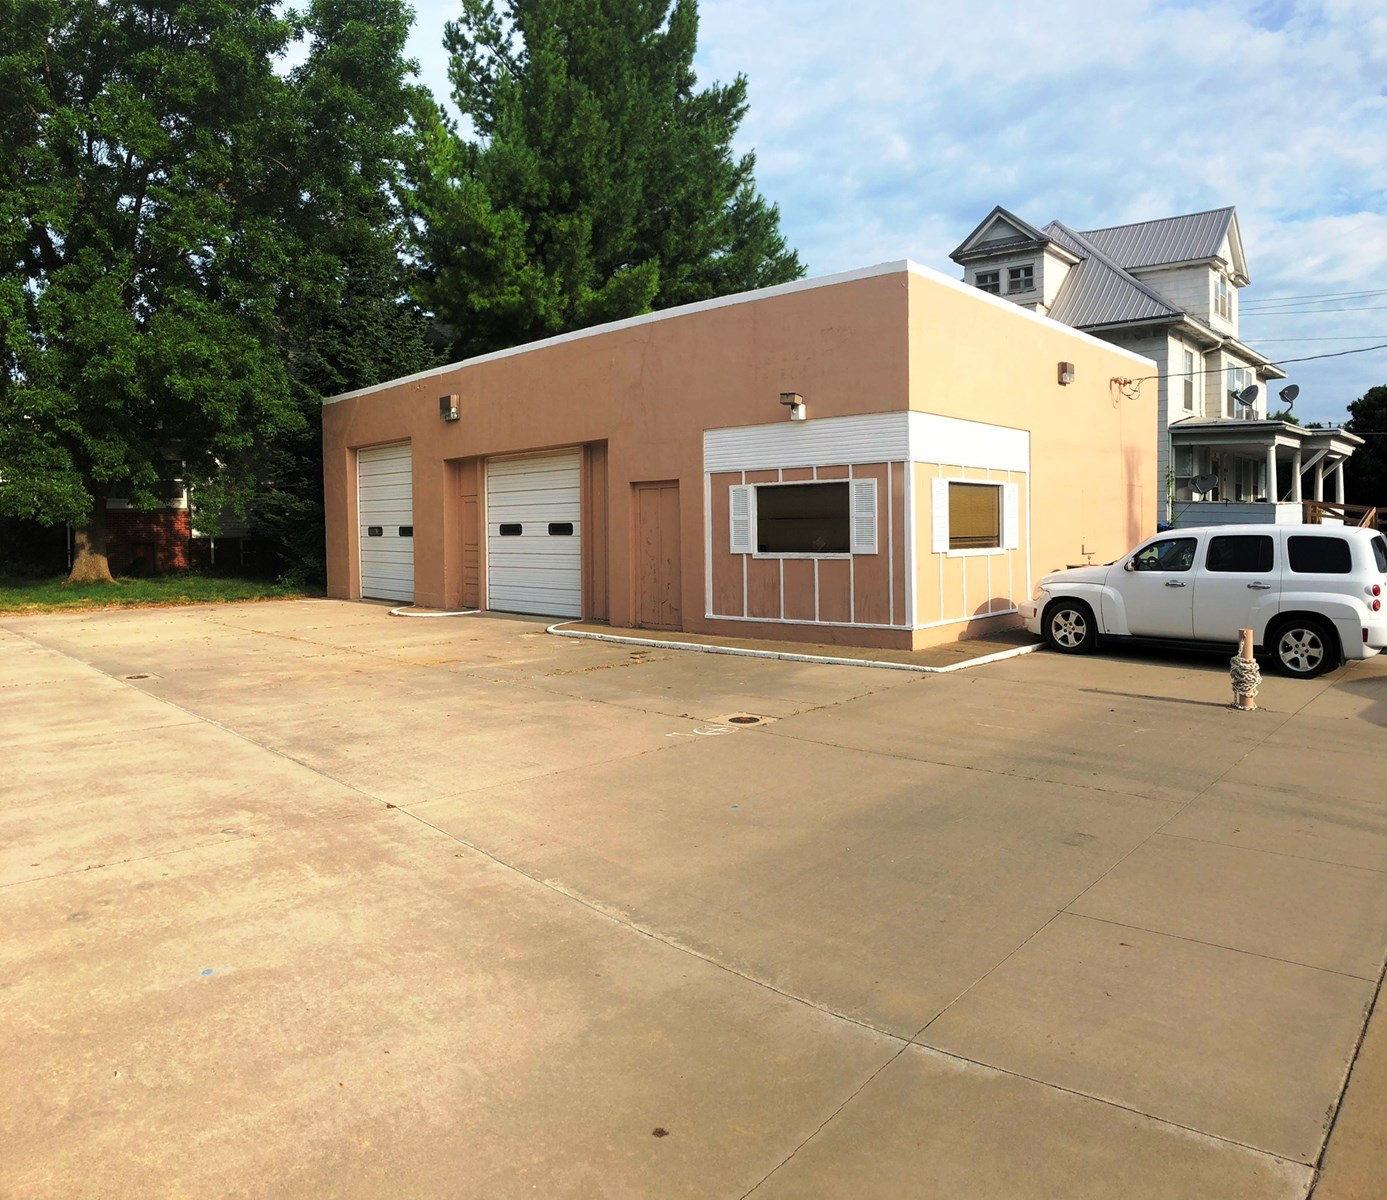 Commercial Building for Sale in Albia, IA